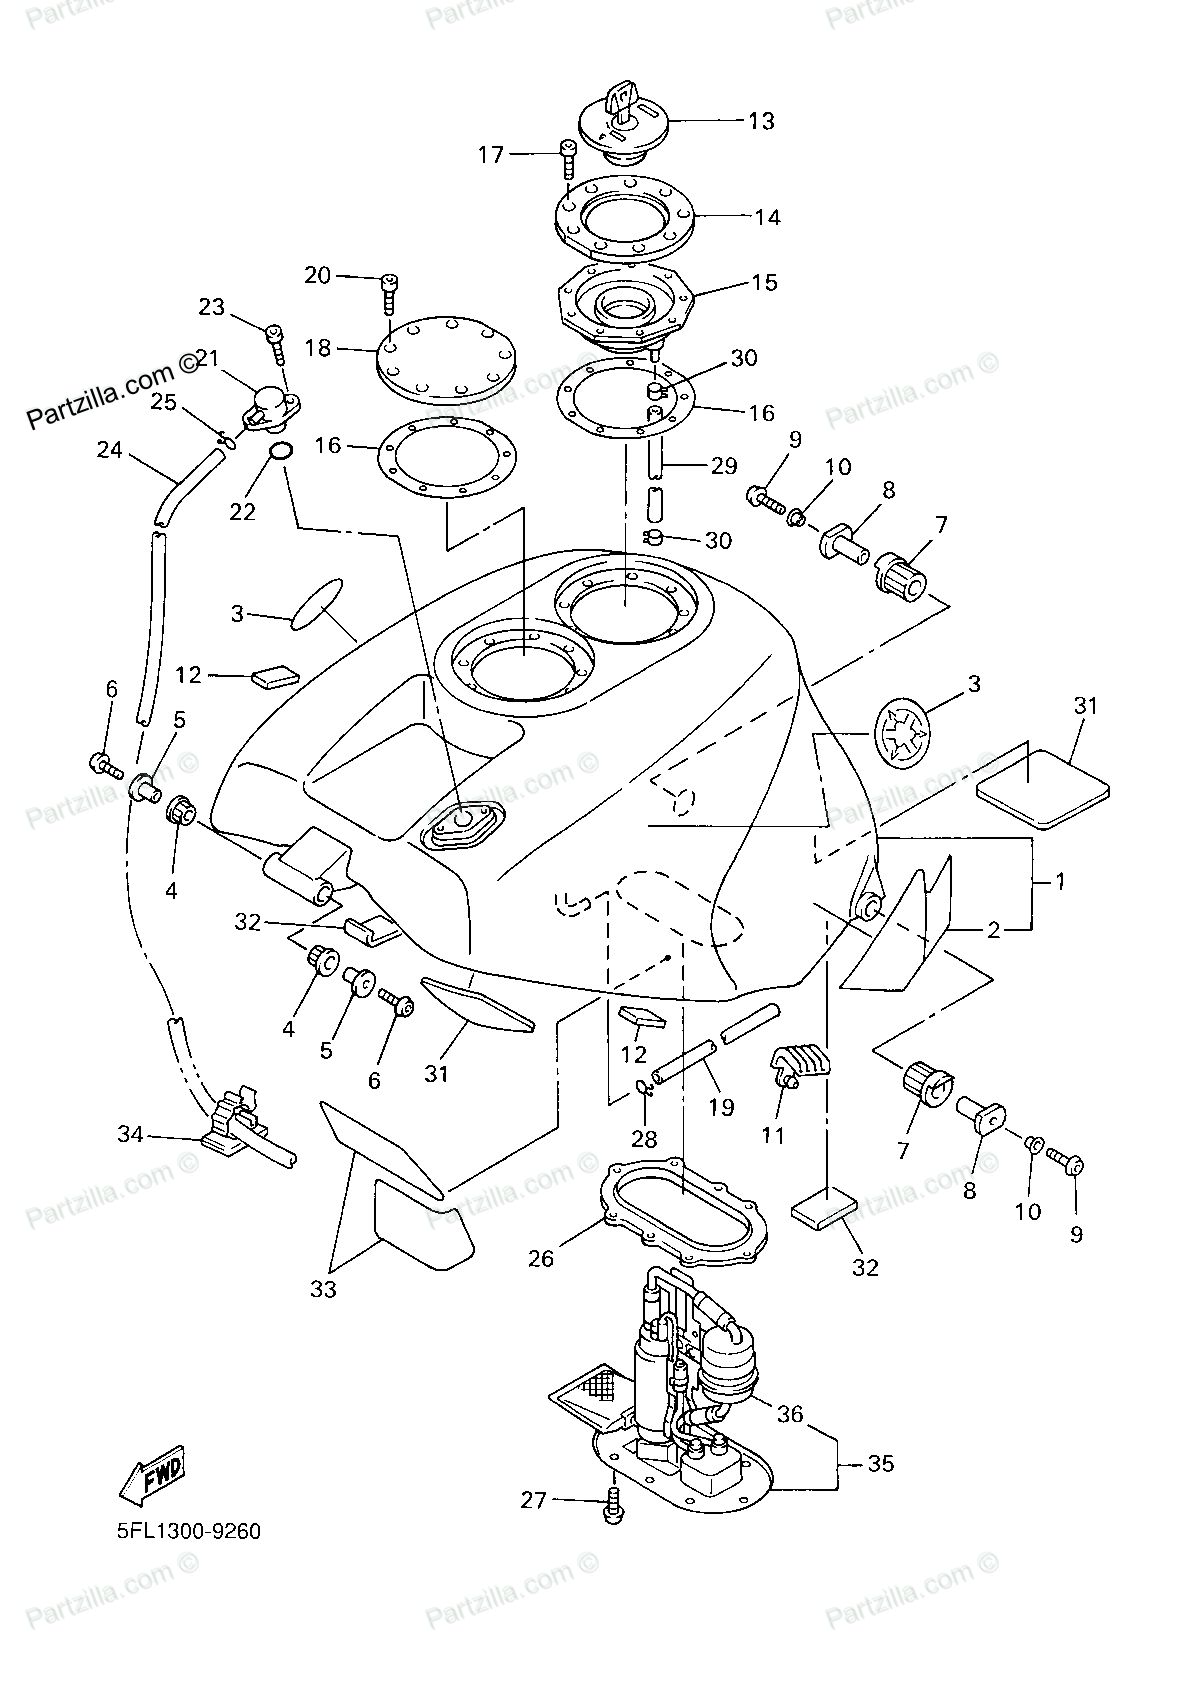 diagram of yamaha motorcycle parts 1999 yzfr7  1